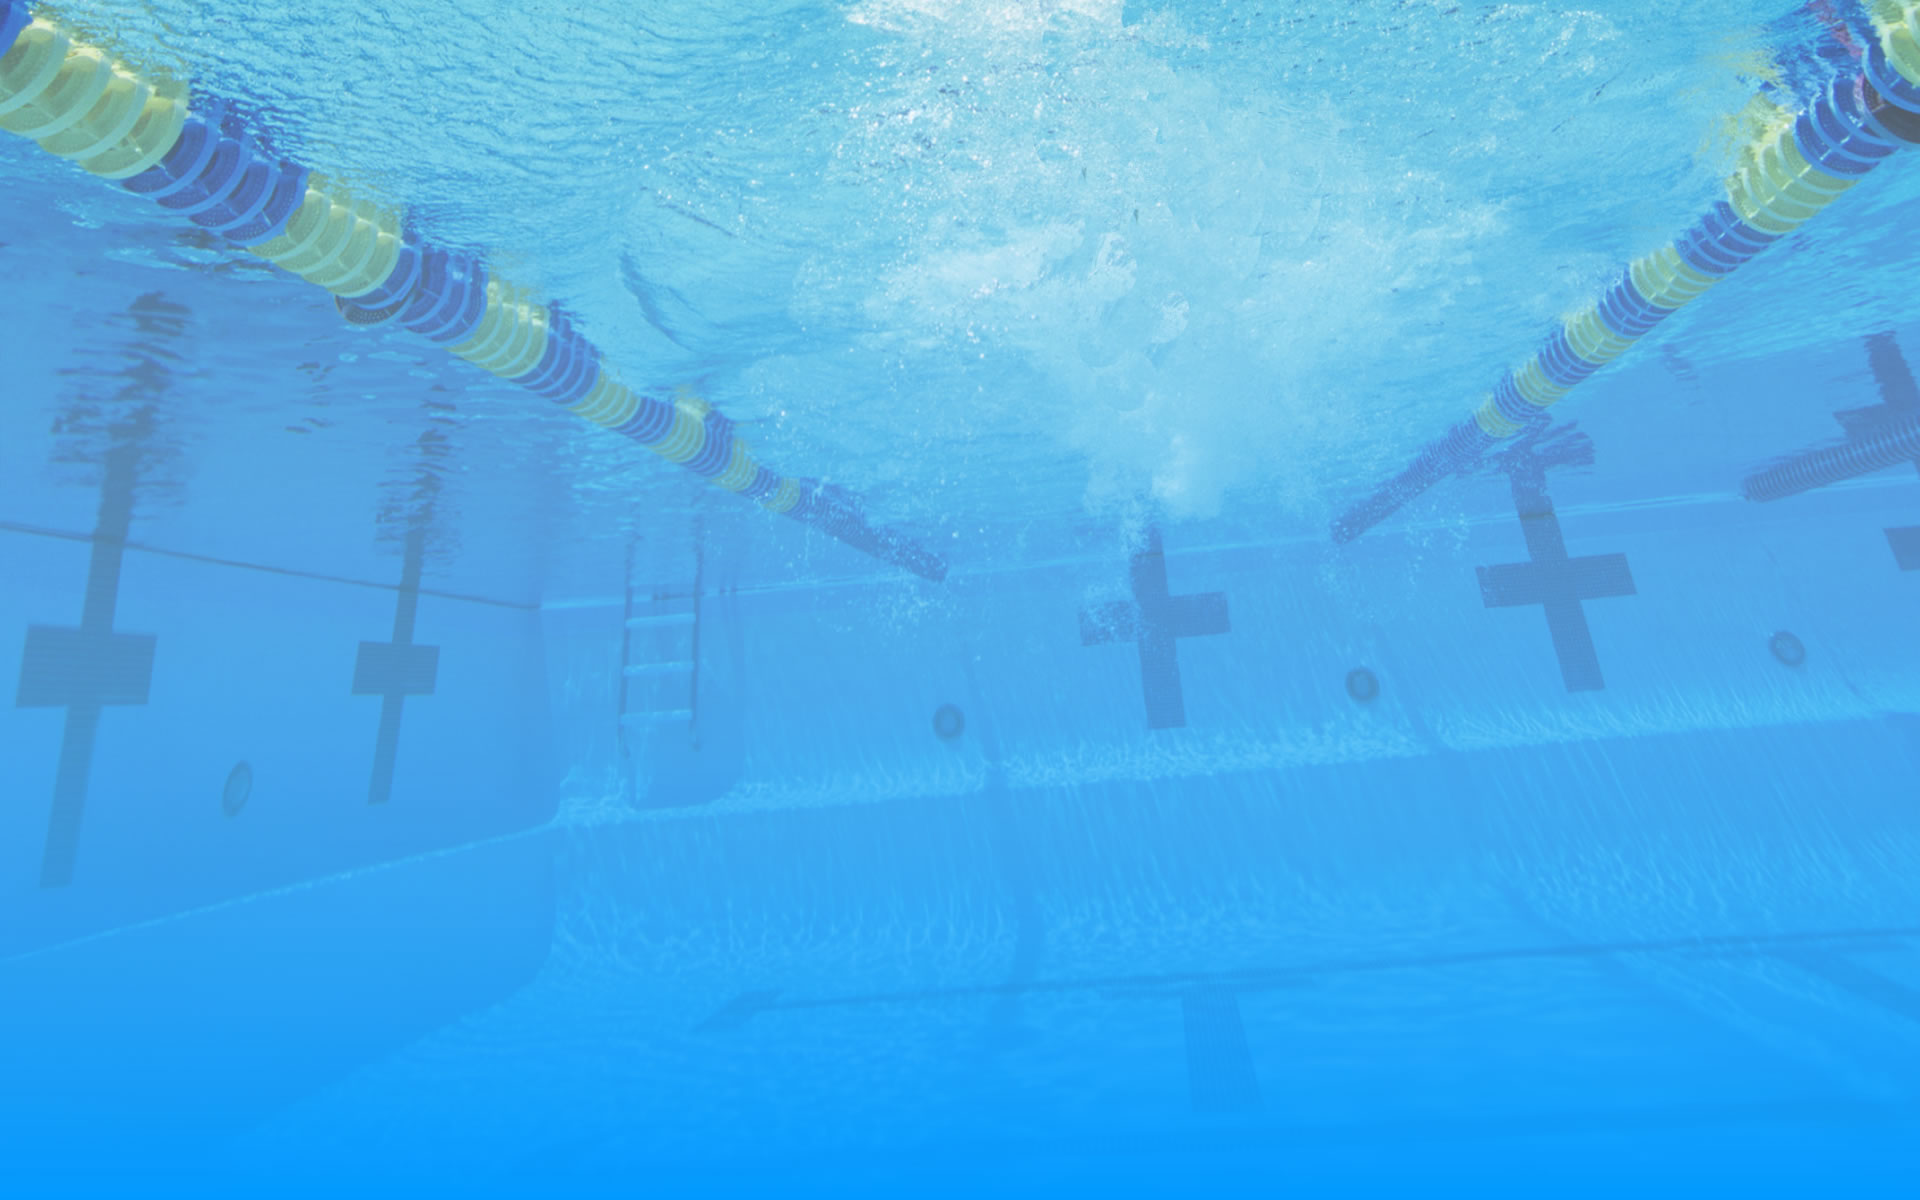 Olympic Swimming Pool Lanes swimming pool lanes background underwater p with inspiration